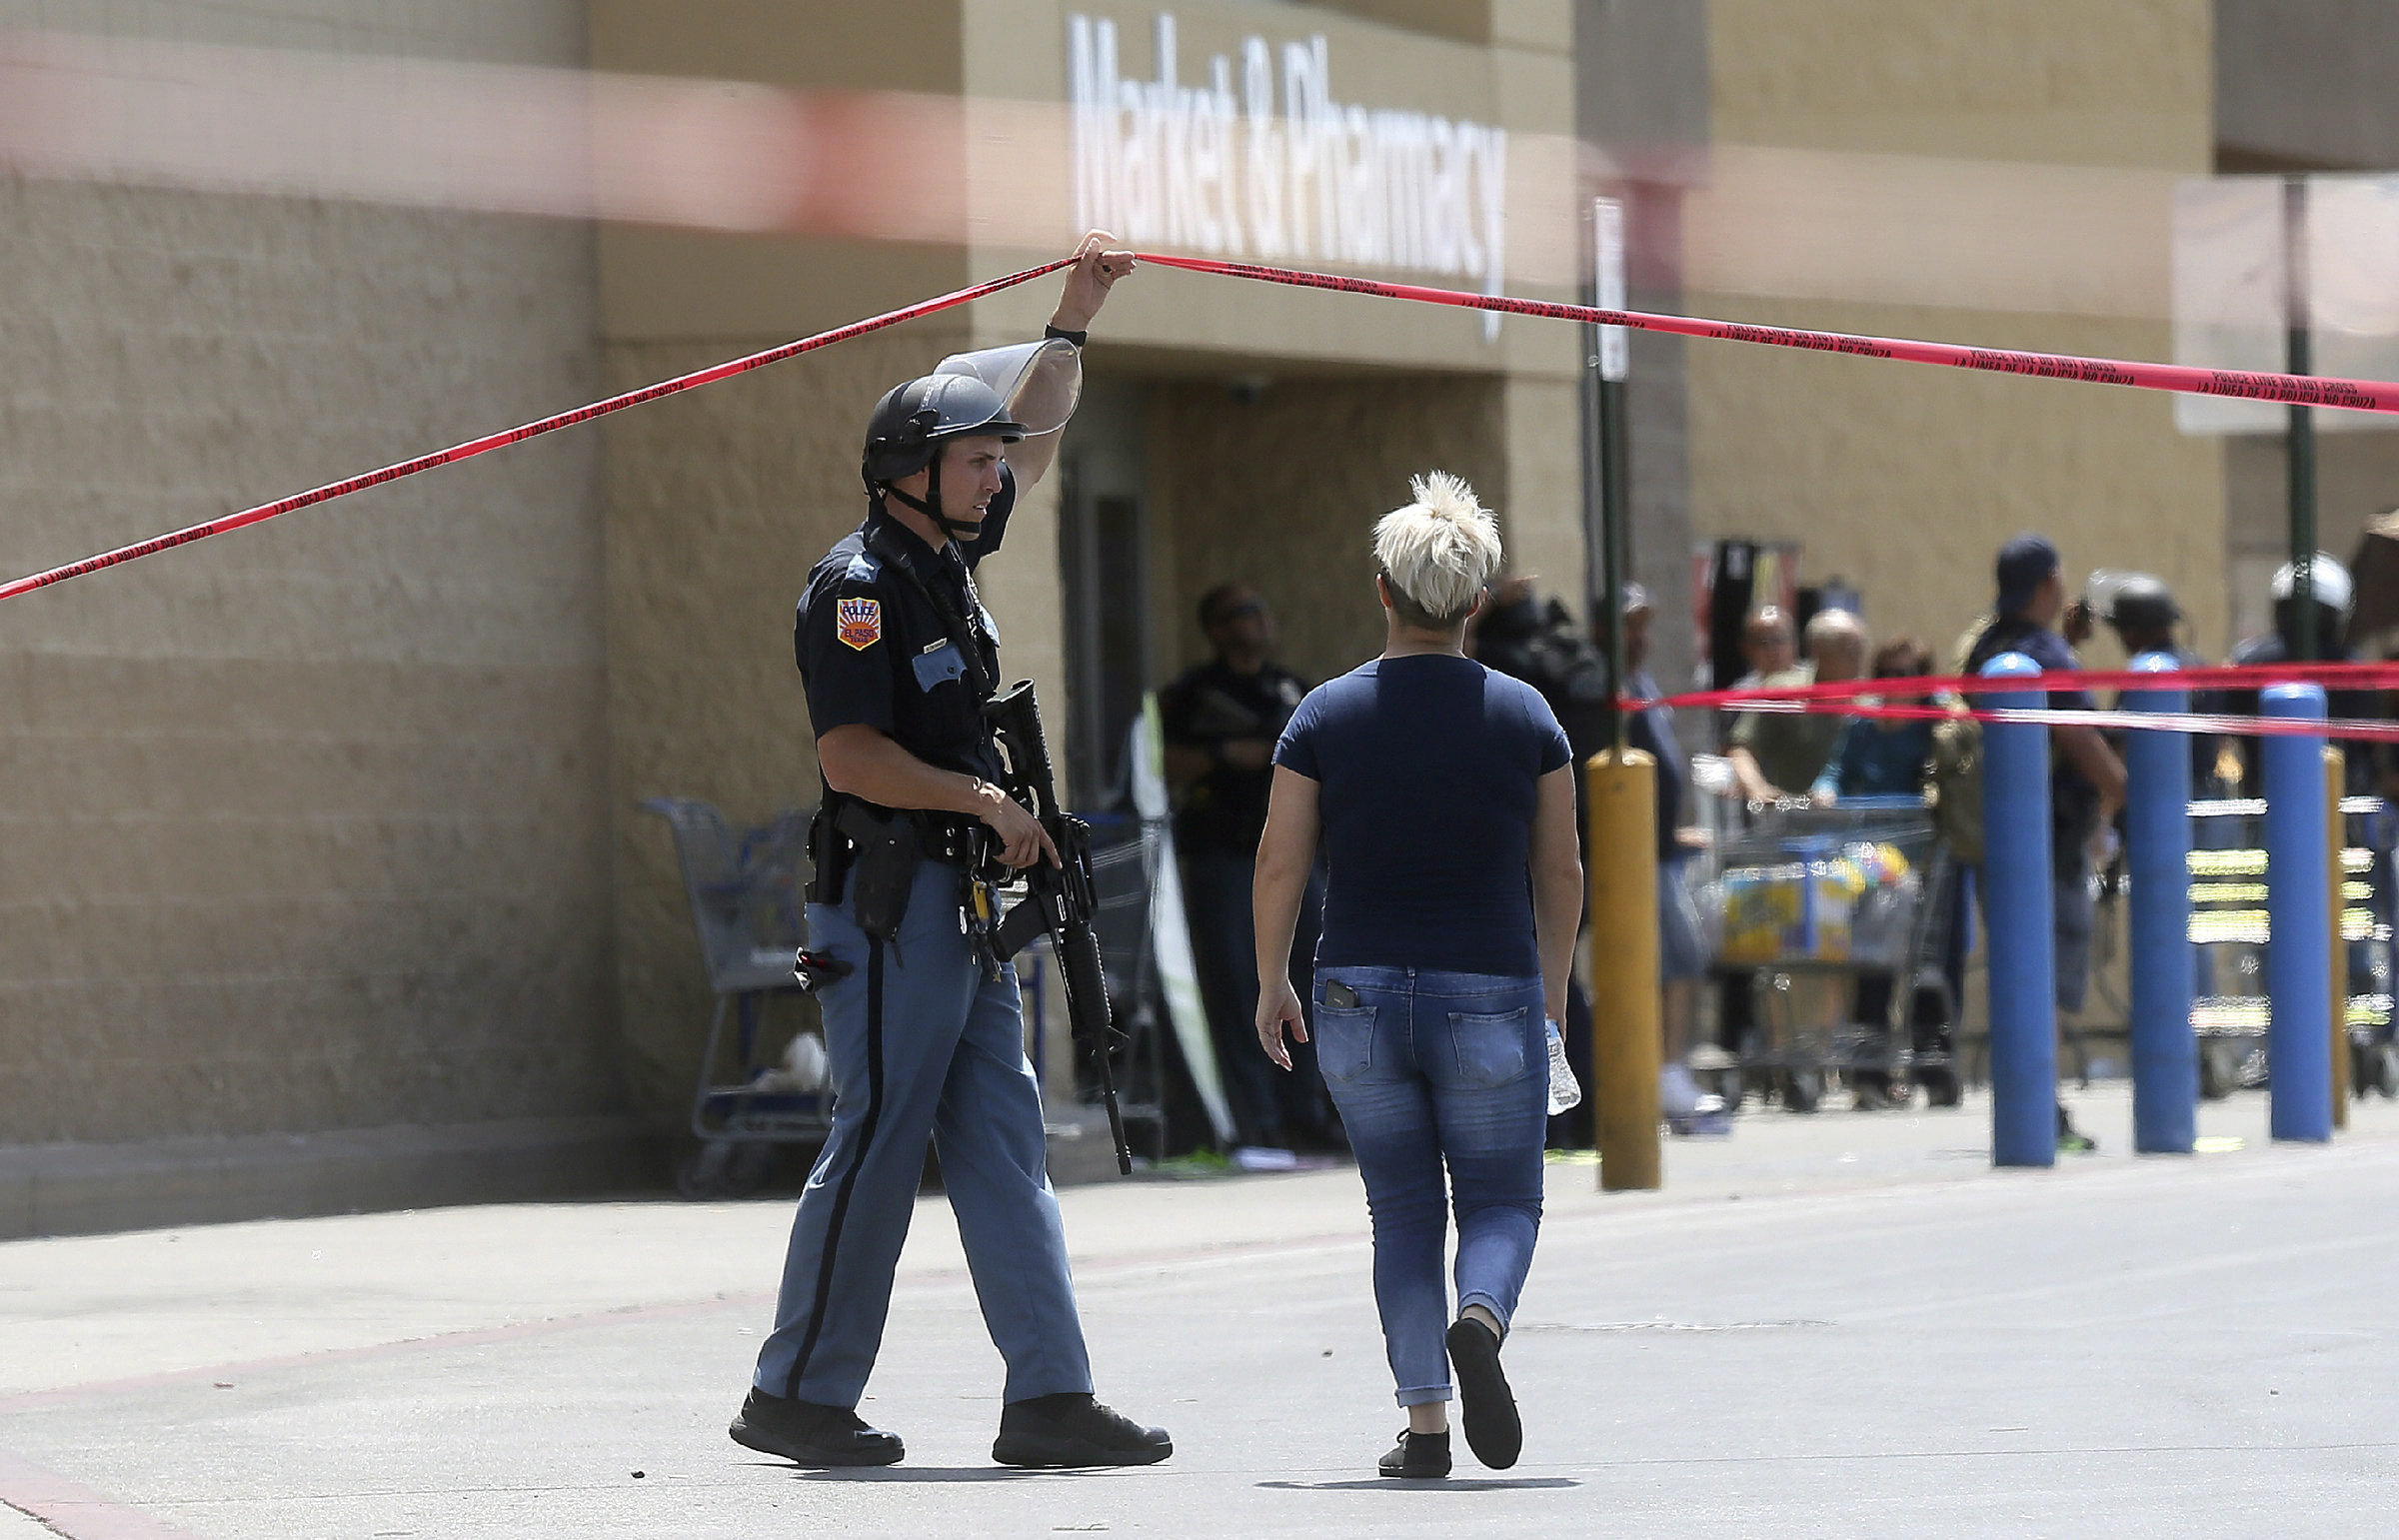 Walmart wrestles with how to respond to active shooters in its